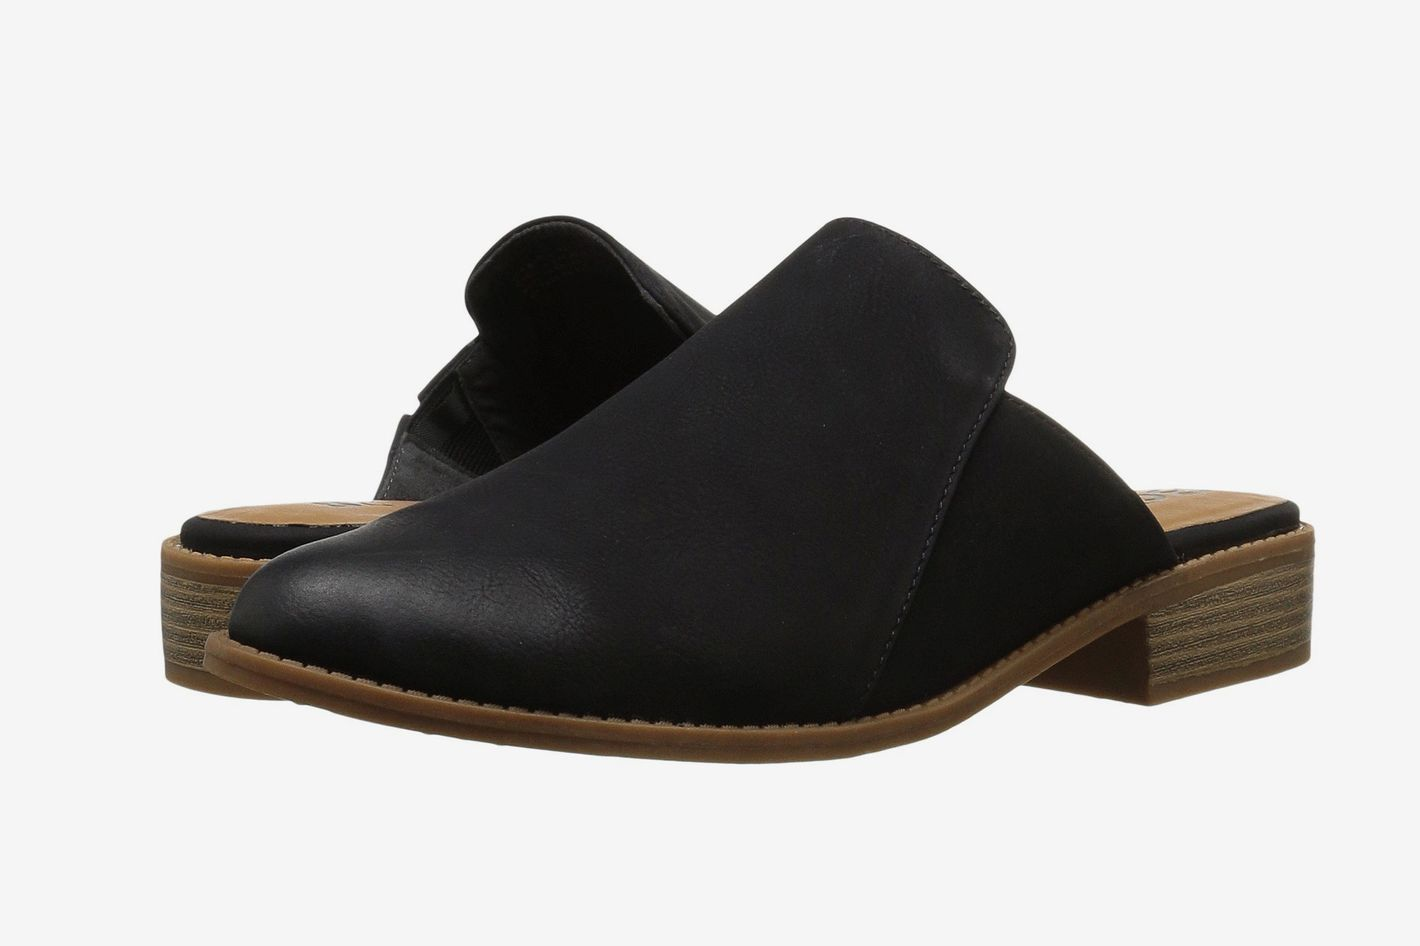 BC Footwear by Seychelles Look At Me Mules